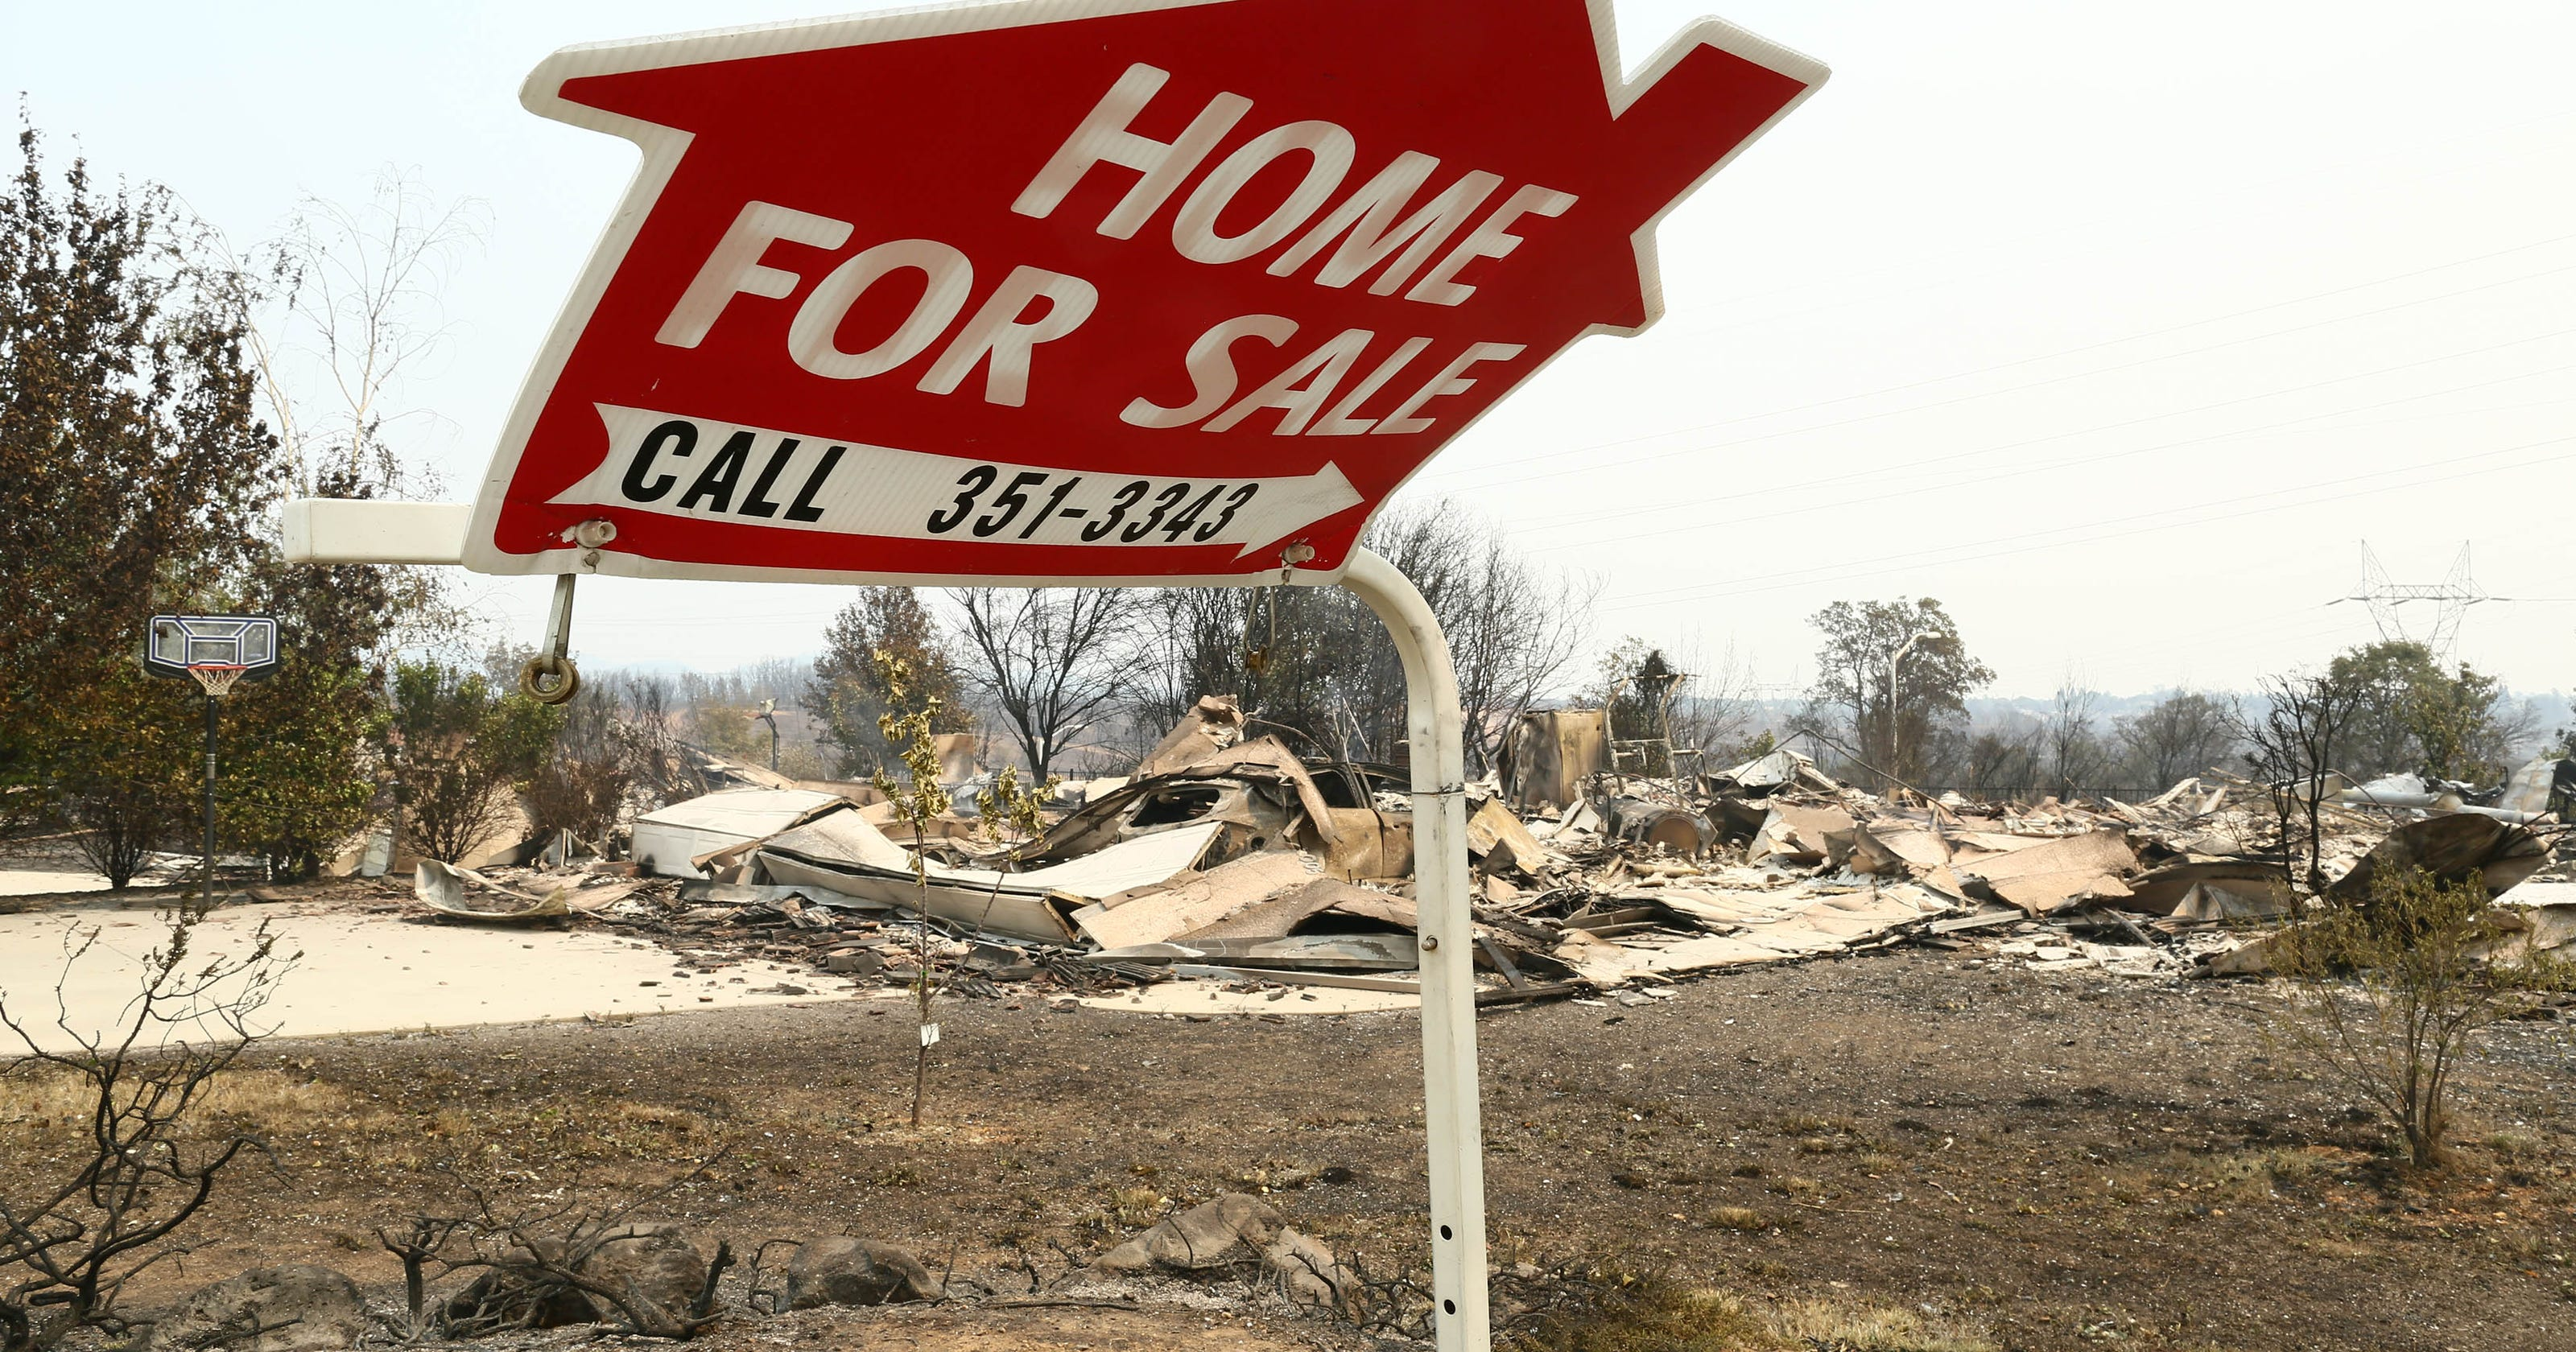 Price gouging complaints emerge in Shasta County after Carr Fire